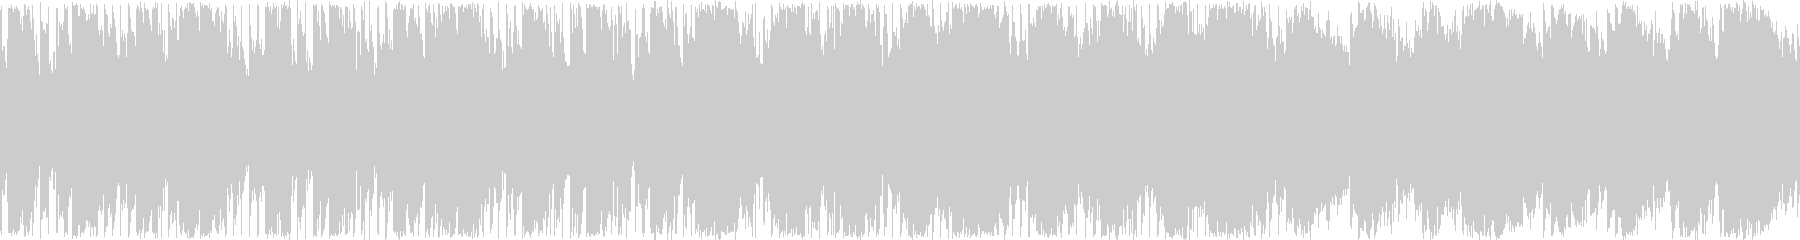 Not too dark but sad electronic music's unreproduced waveform